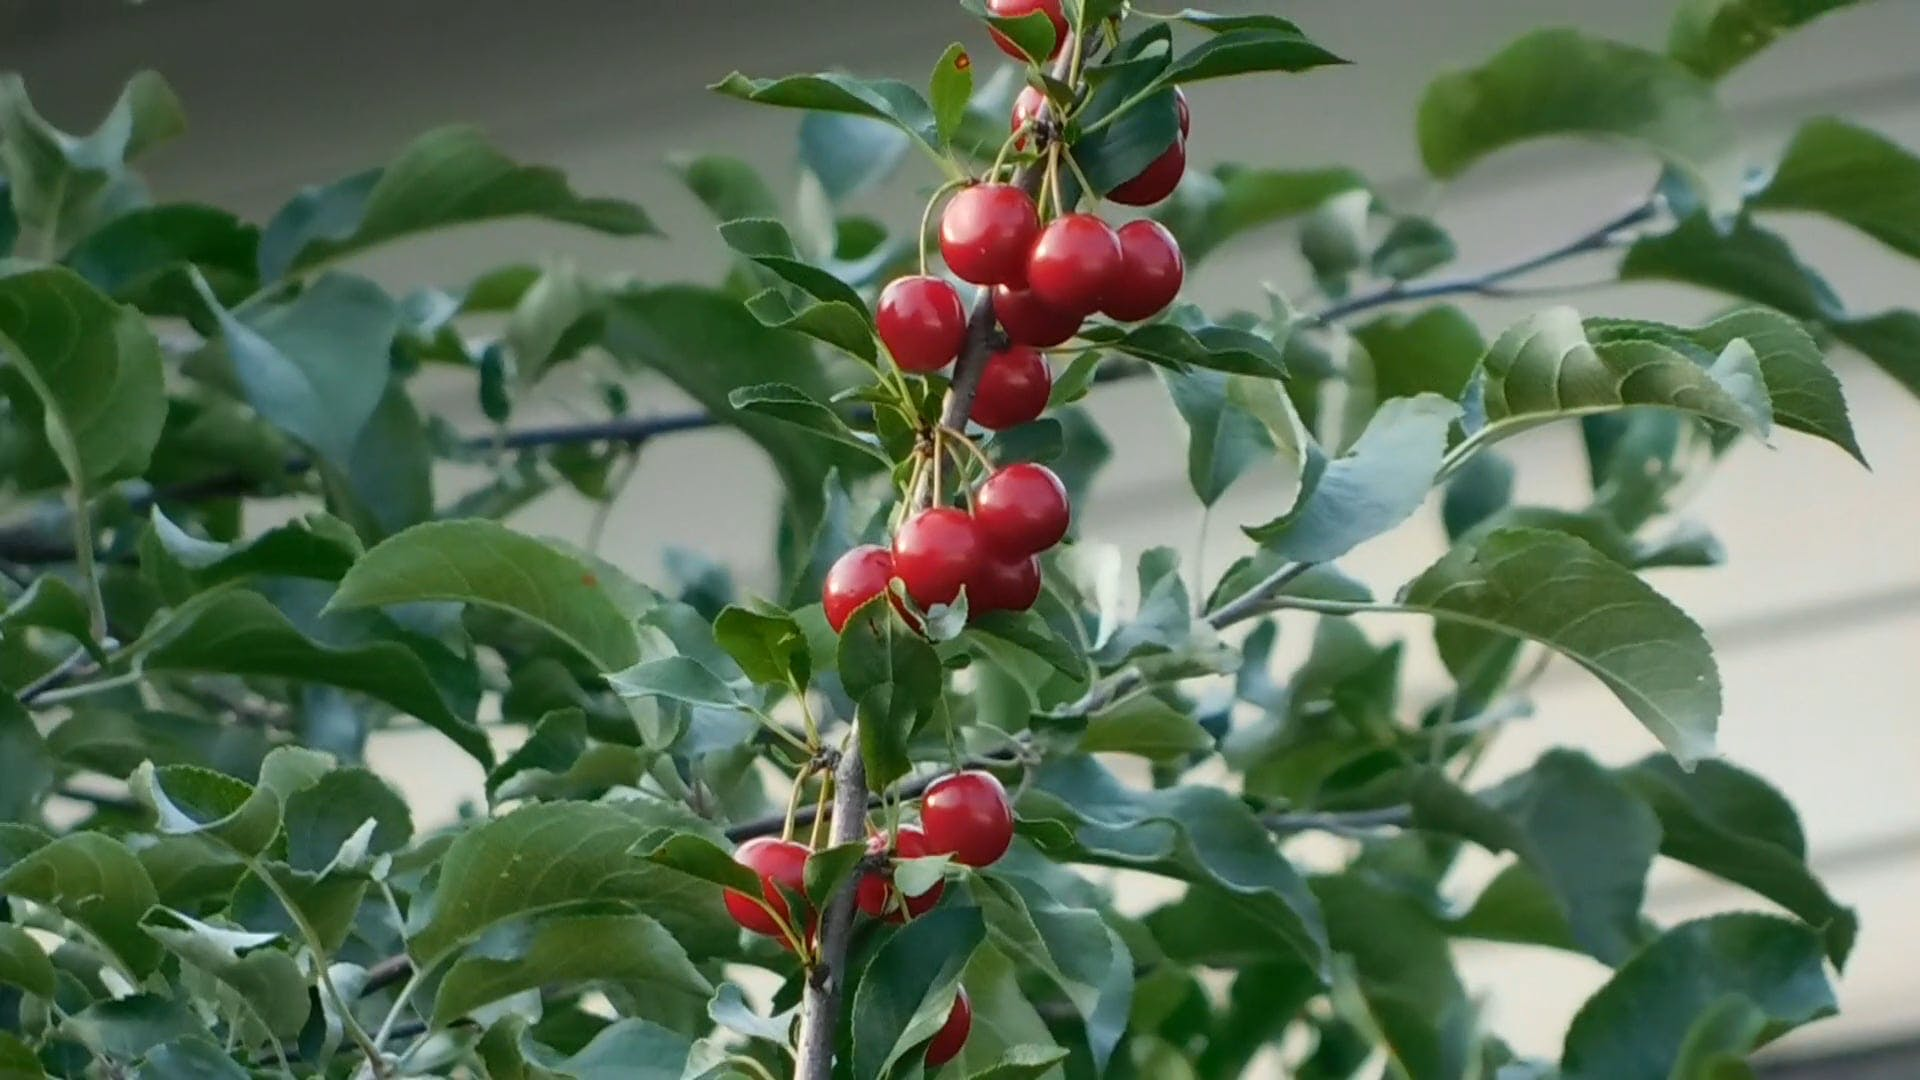 Close-Up Video Of Cherries